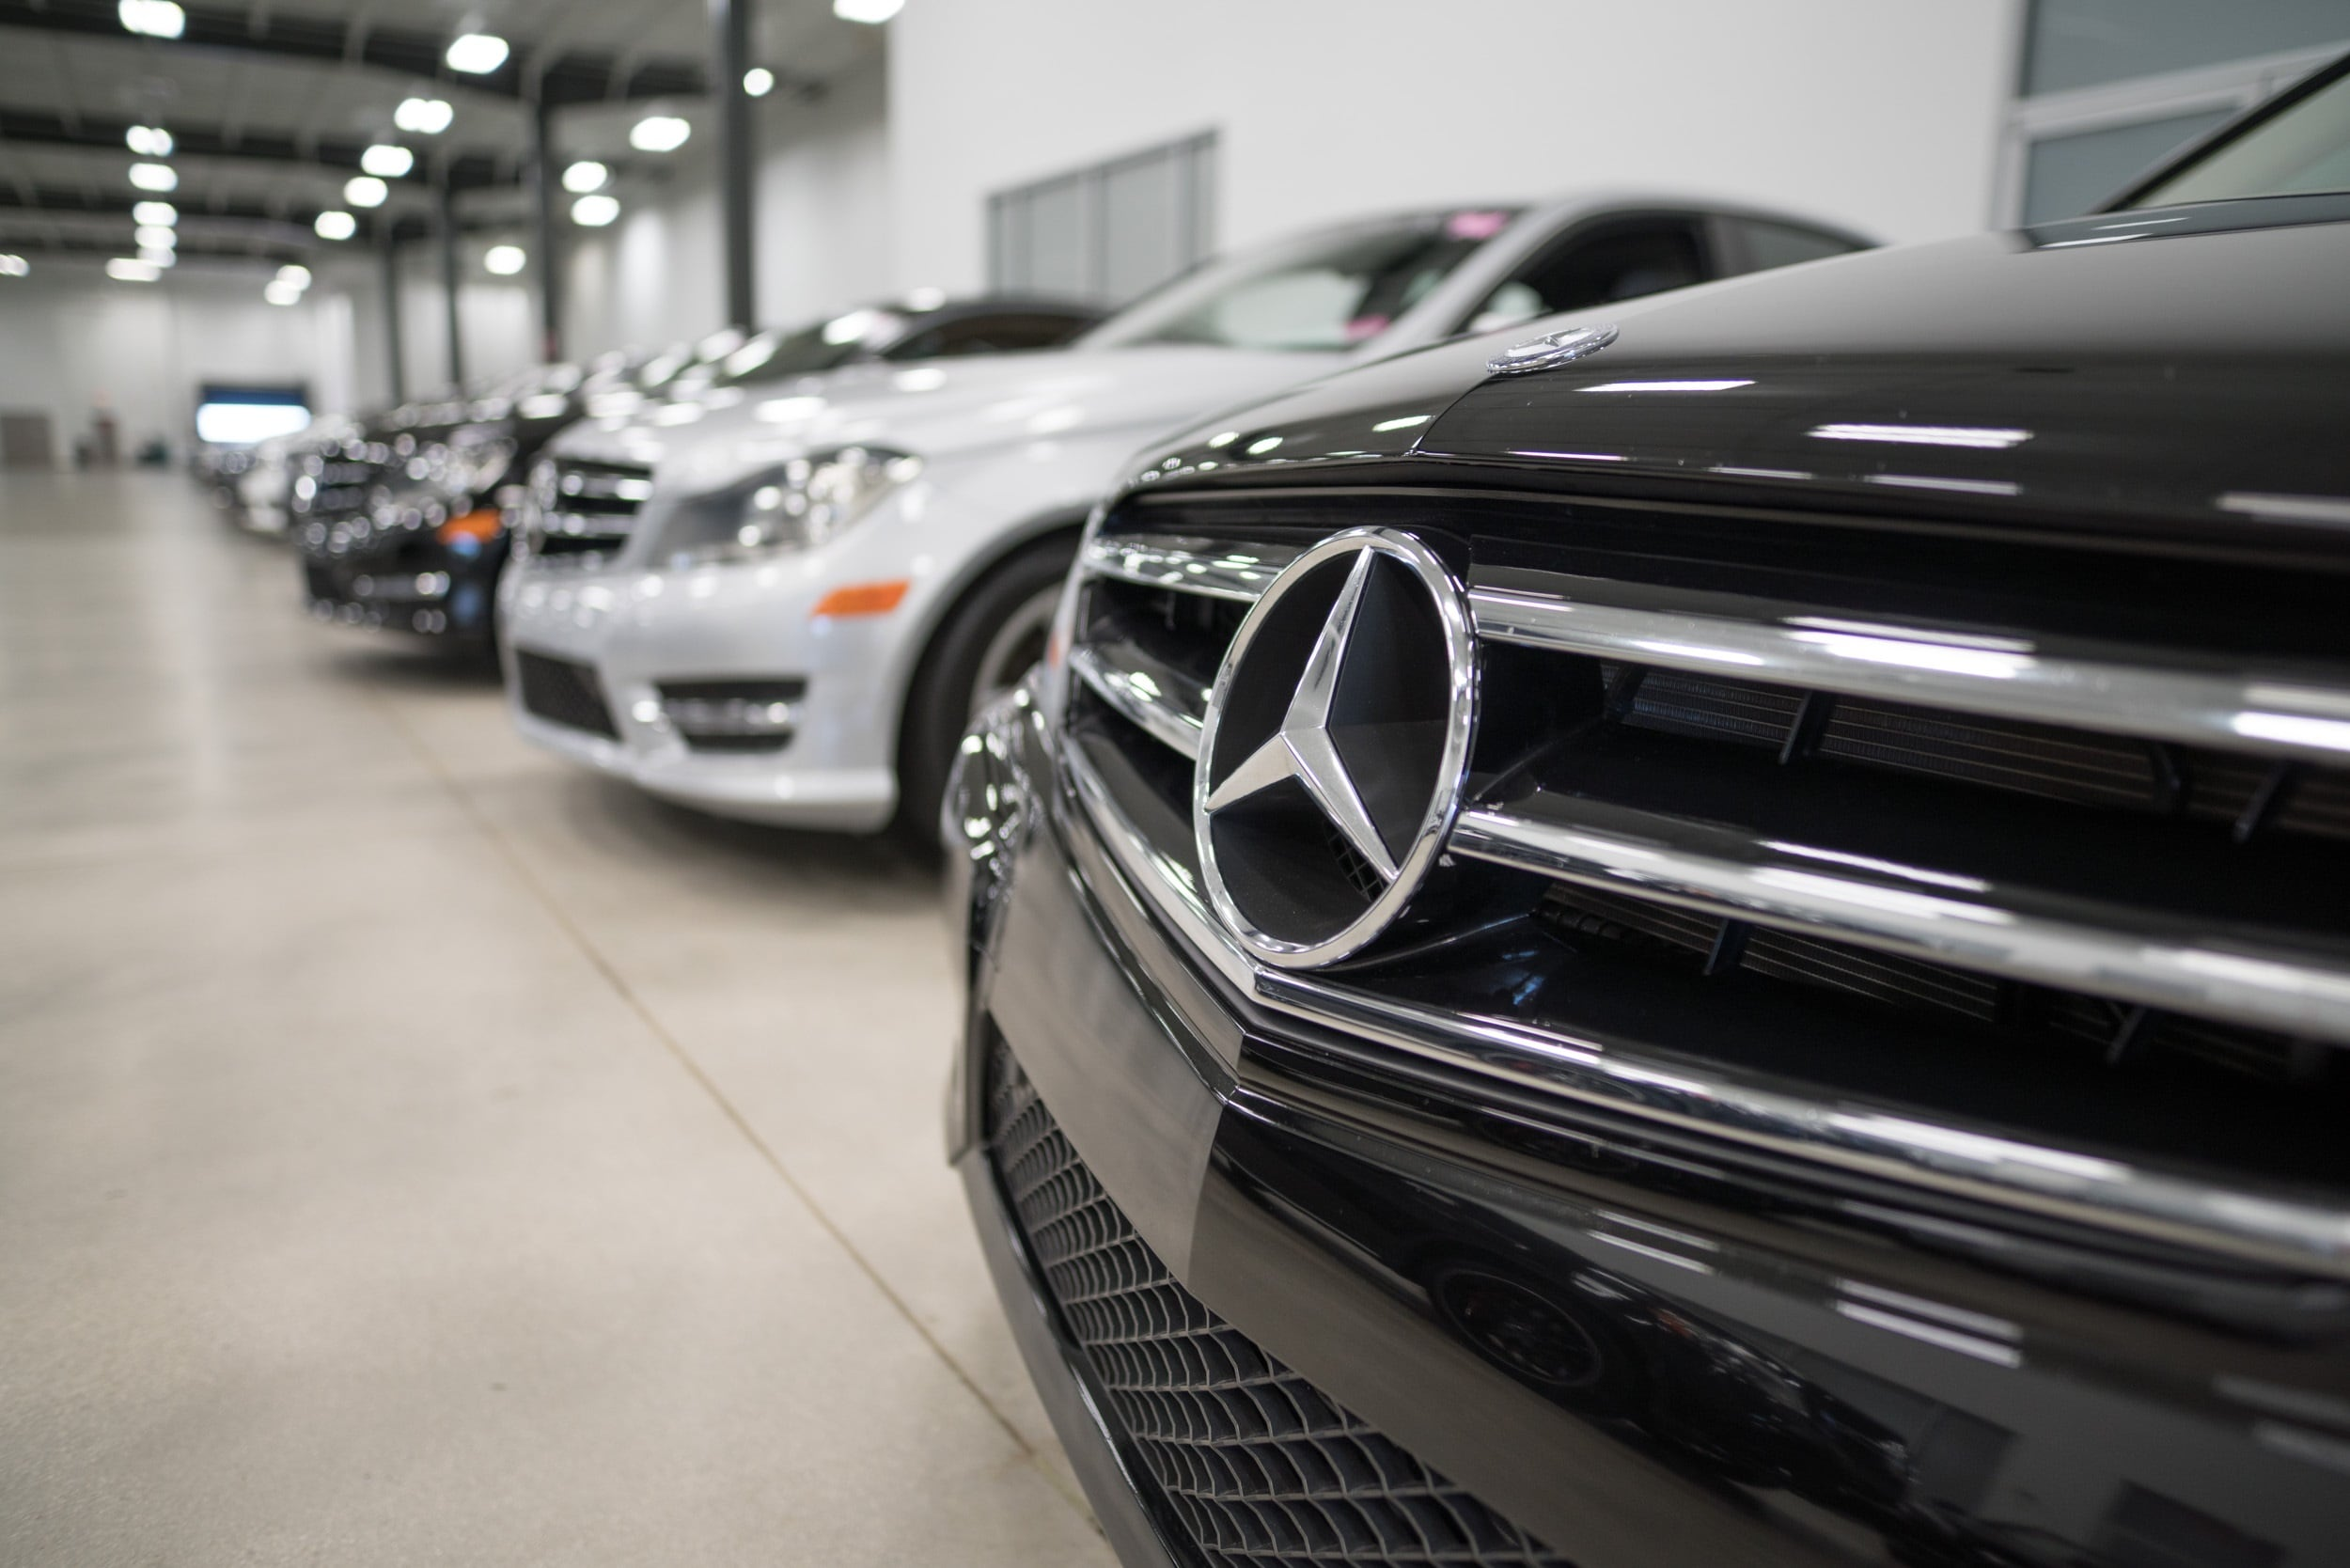 Mercedes benz dealership near me fort lauderdale fl for Authorized mercedes benz service centers near me